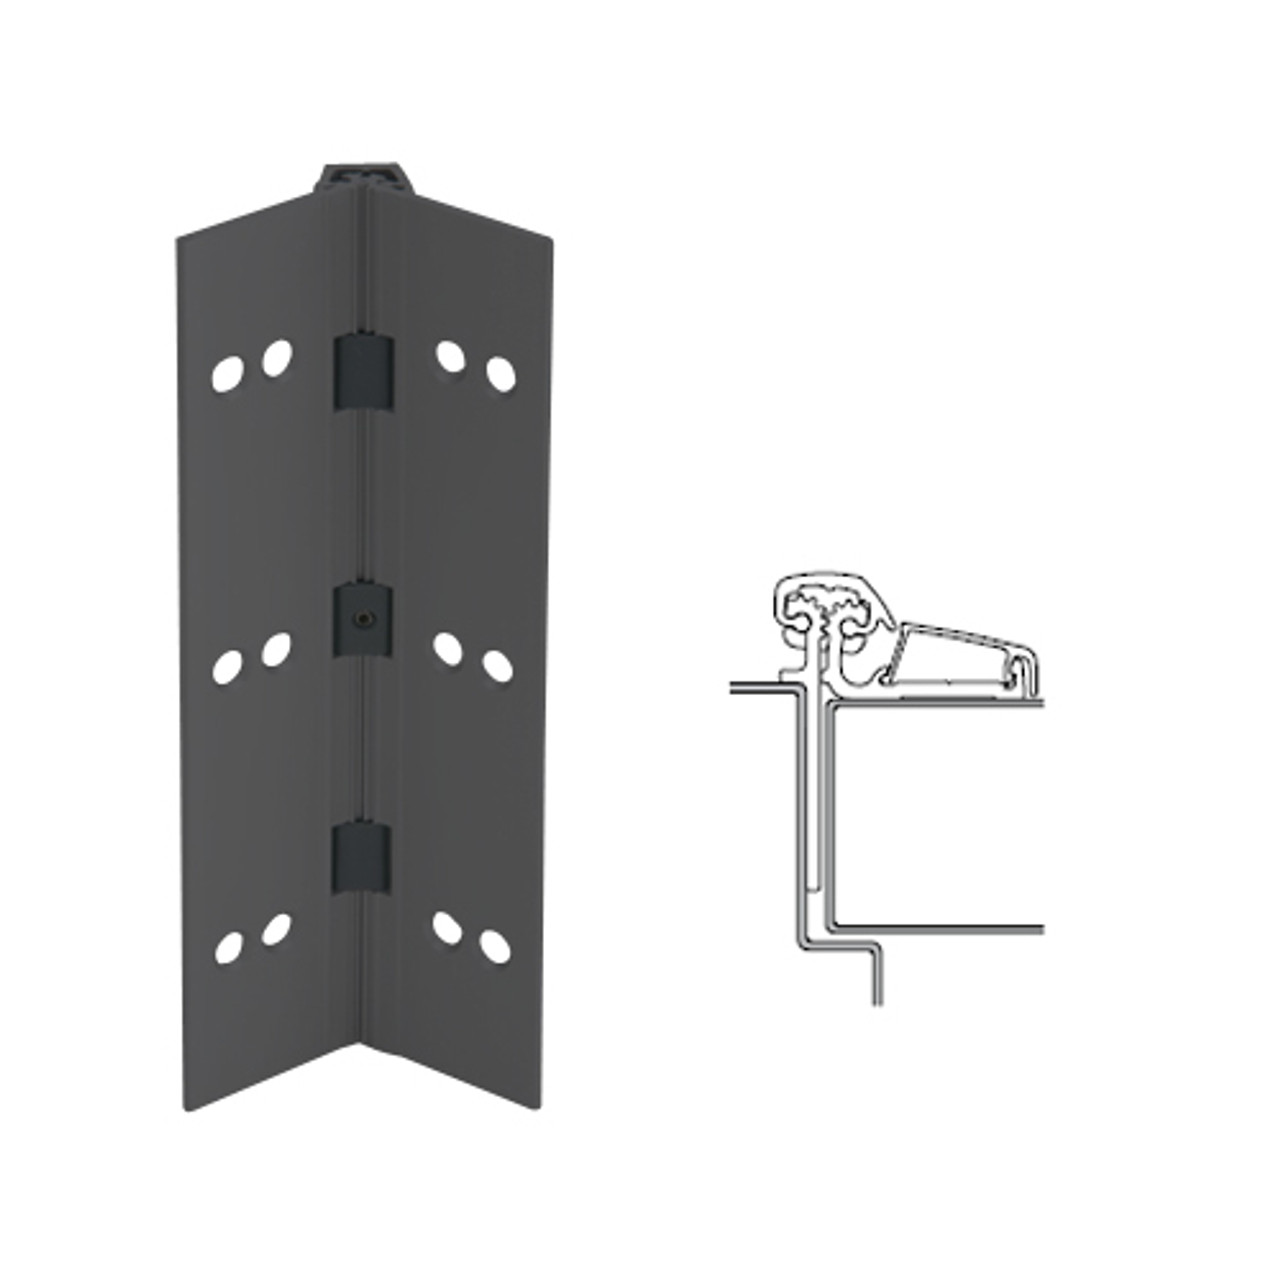 053XY-315AN-120-TFWD IVES Adjustable Half Surface Continuous Geared Hinges with Thread Forming Screws in Anodized Black